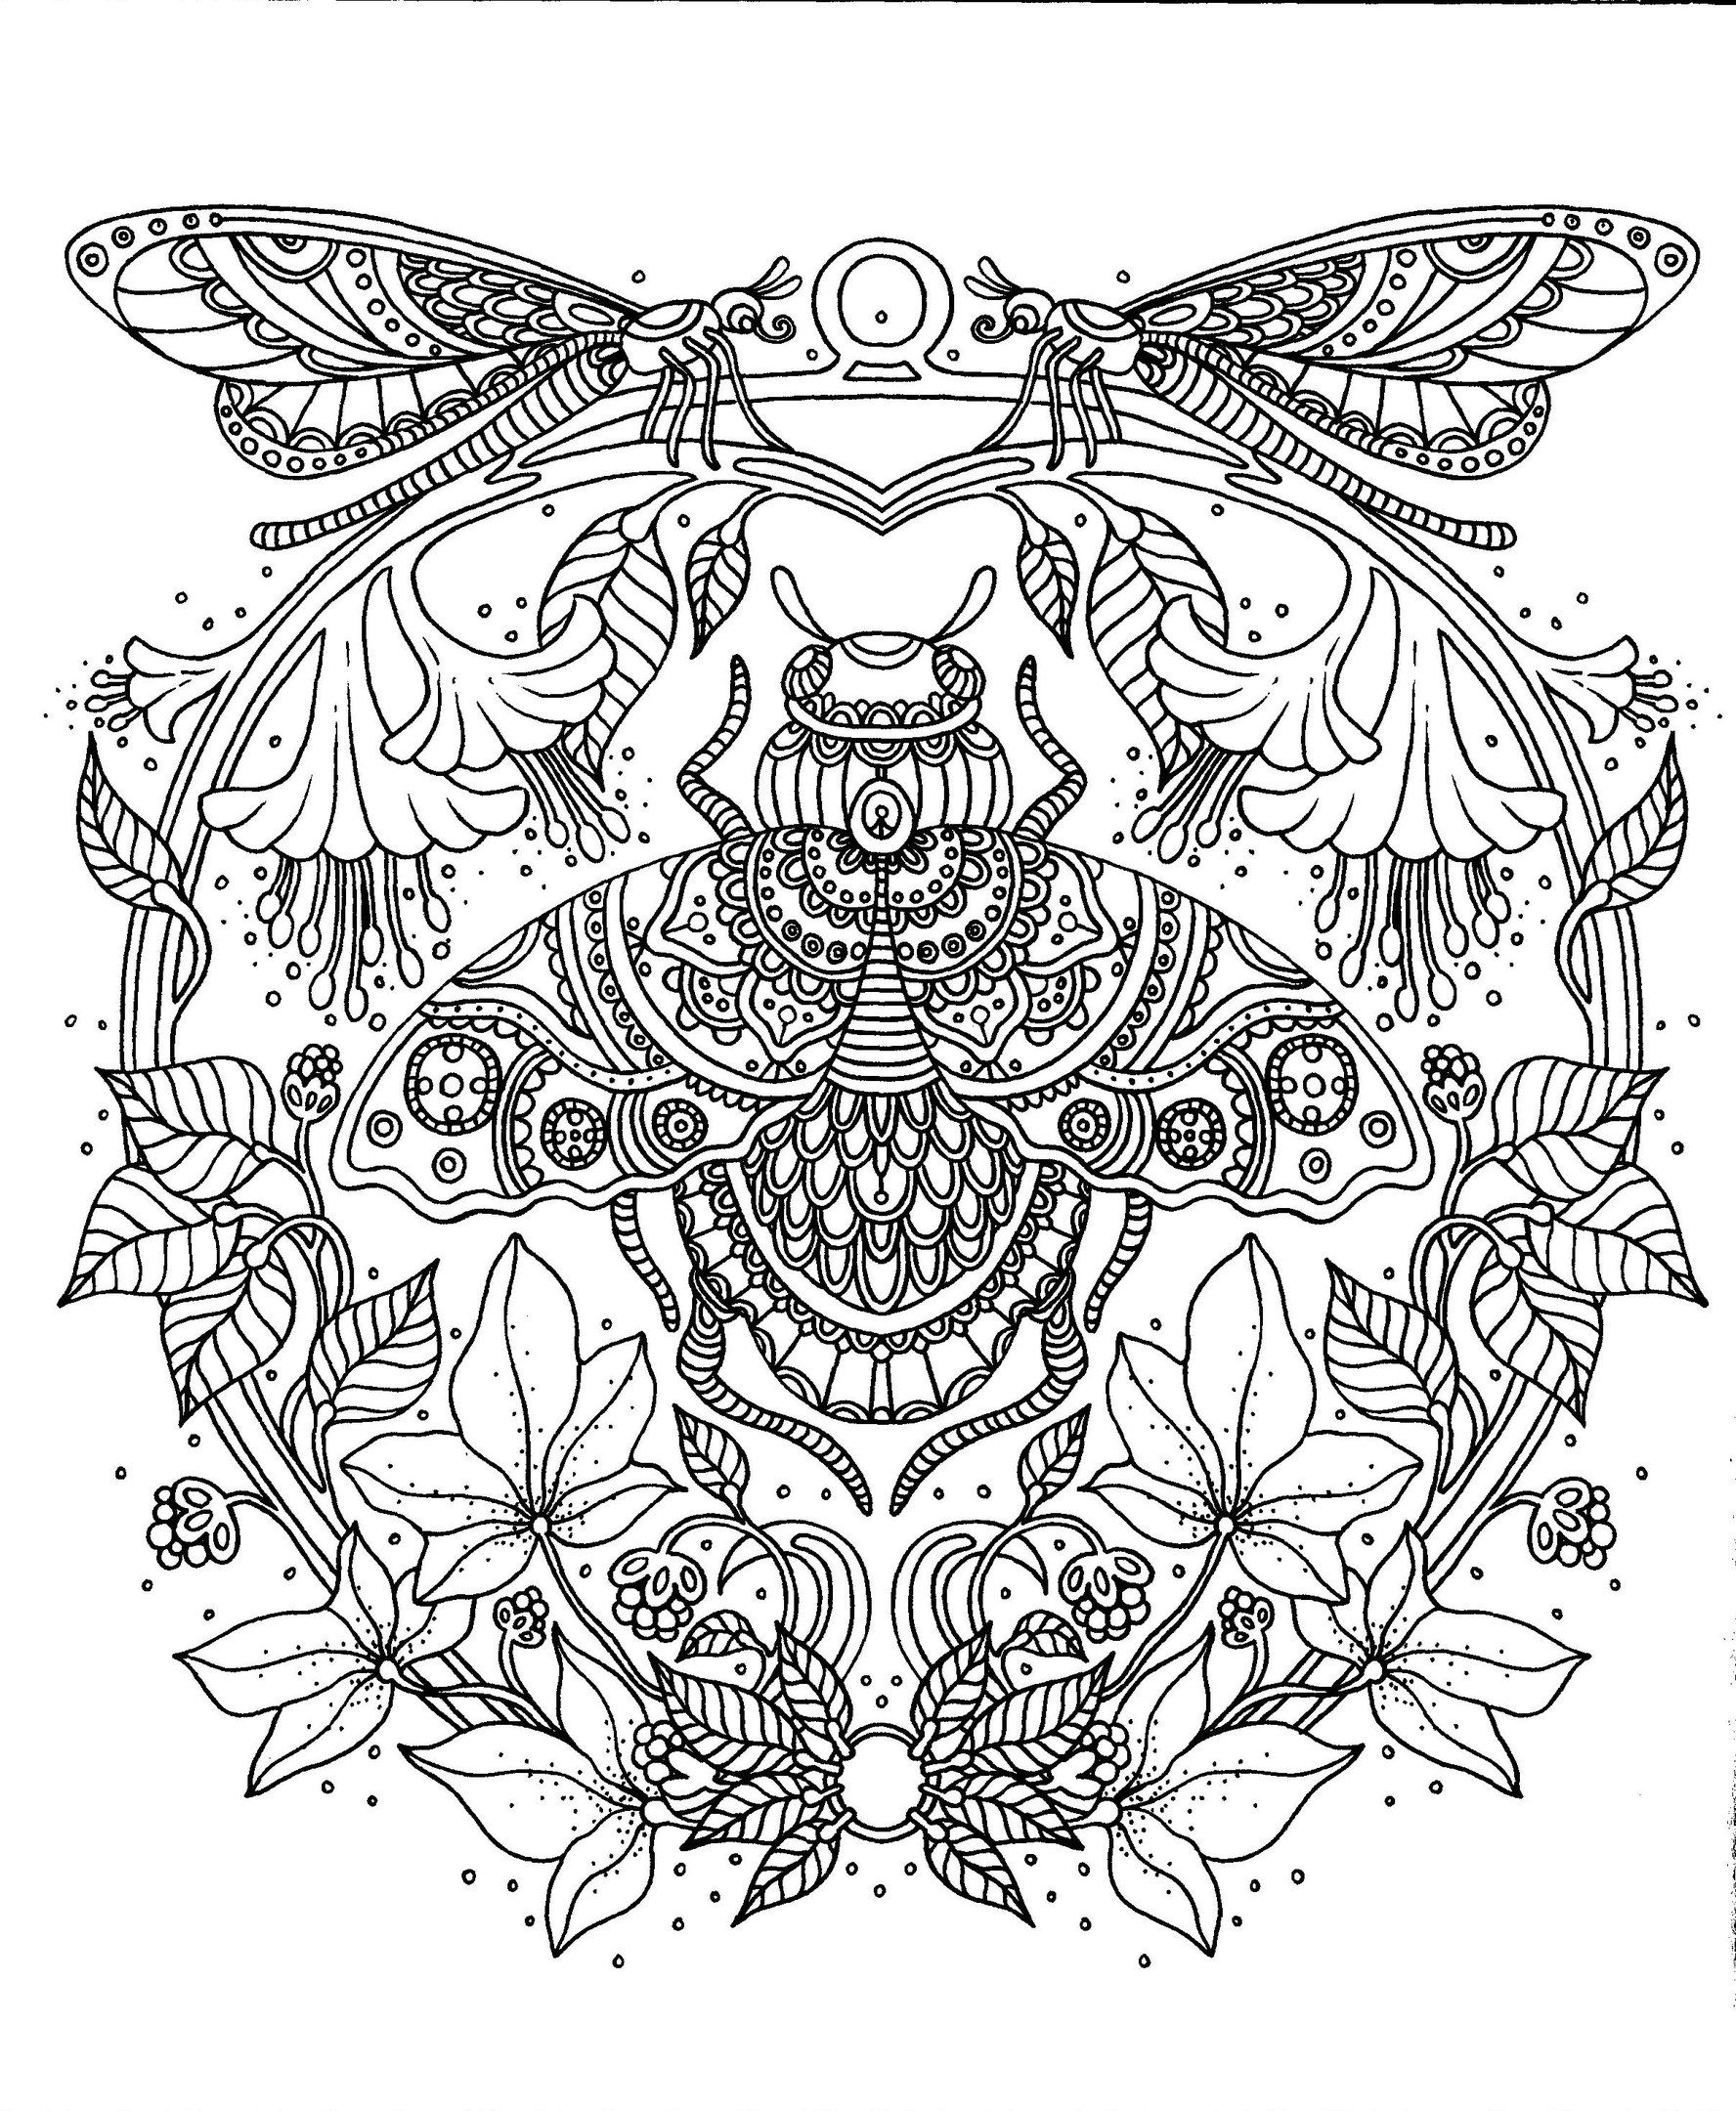 blank coloring pages symmetrical coloring pages at getcoloringscom free coloring blank pages